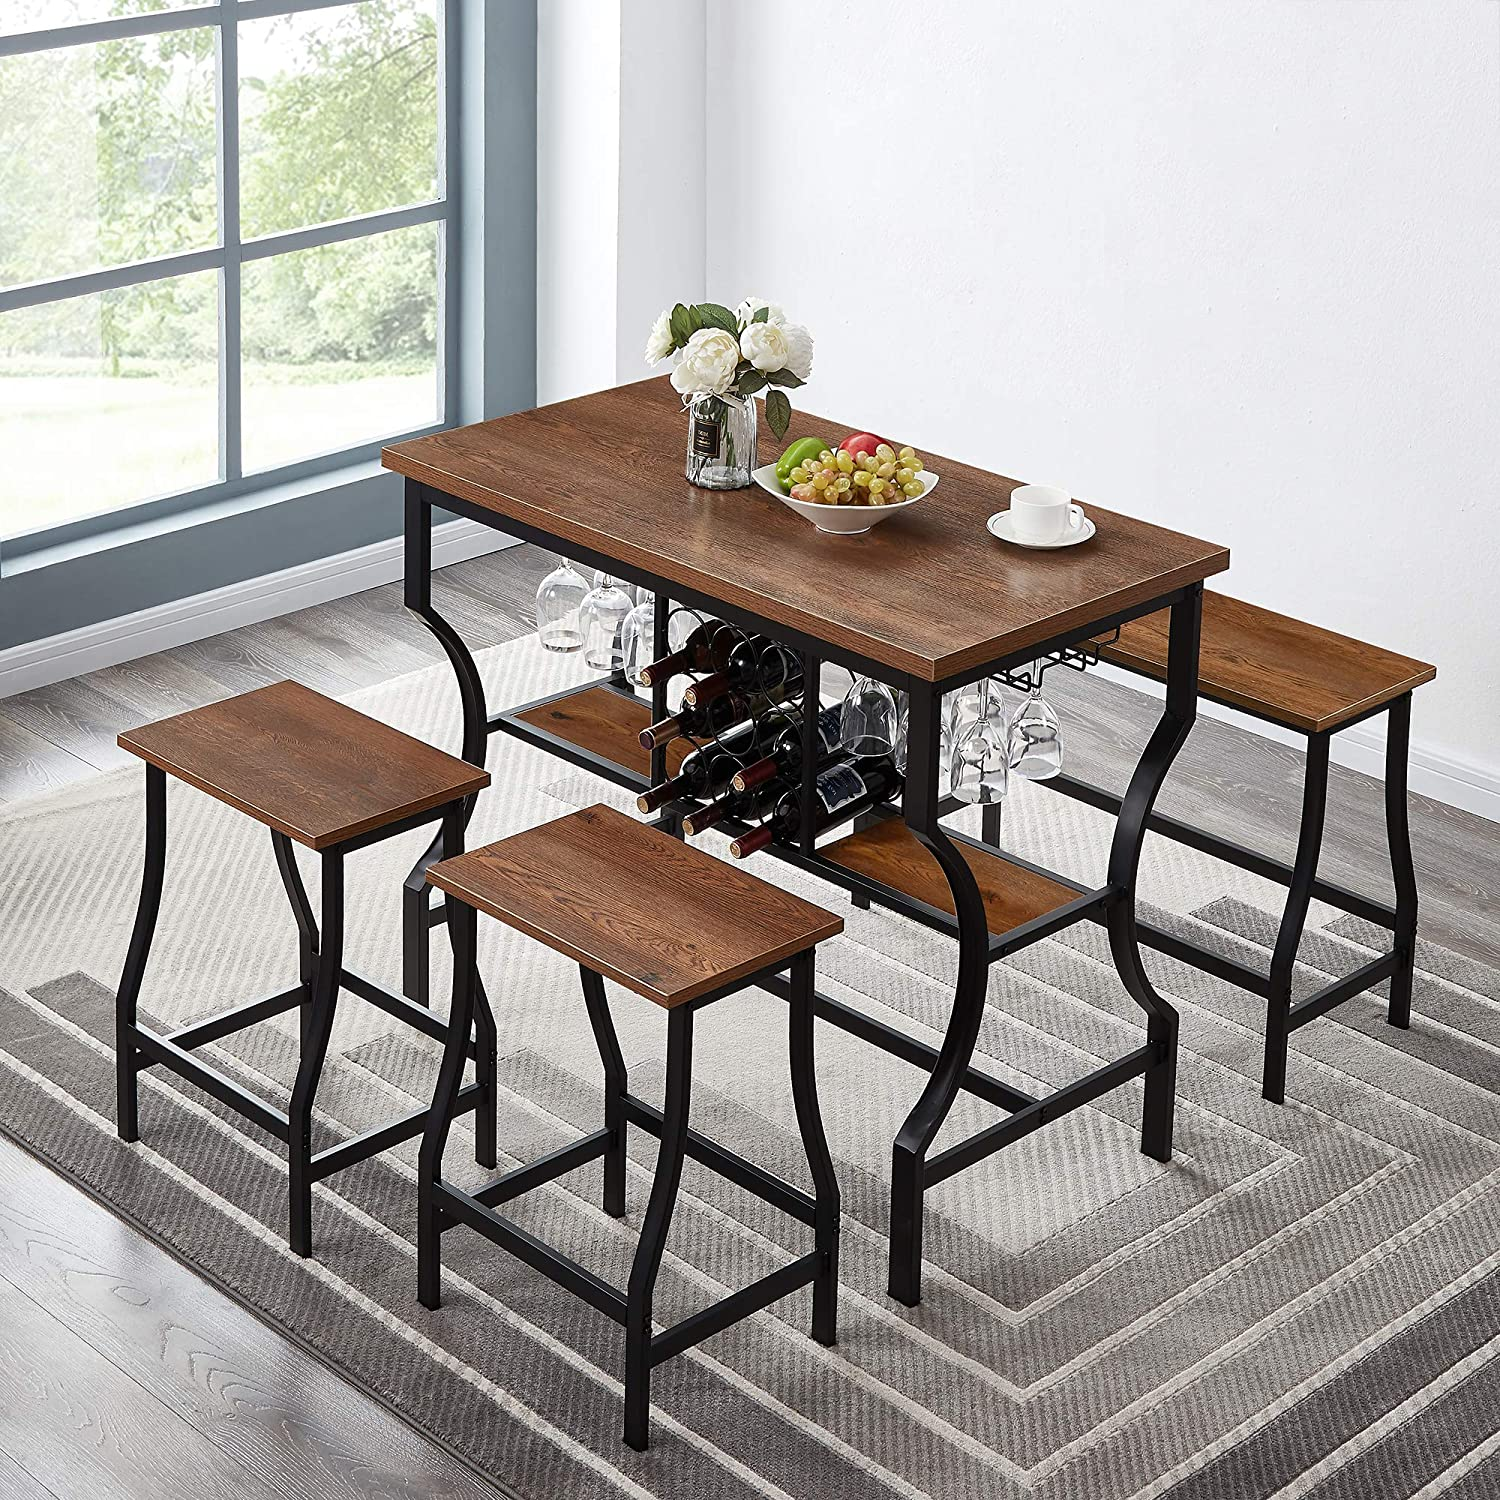 Amazon Com Hombazaar 4 Piece Dining Room Table Set Counter Height Pub Table Set With Wine Storage And Glass Holder Industrial Style Kitchen Table With 1 Bench And 2 Stools Table Chair Sets